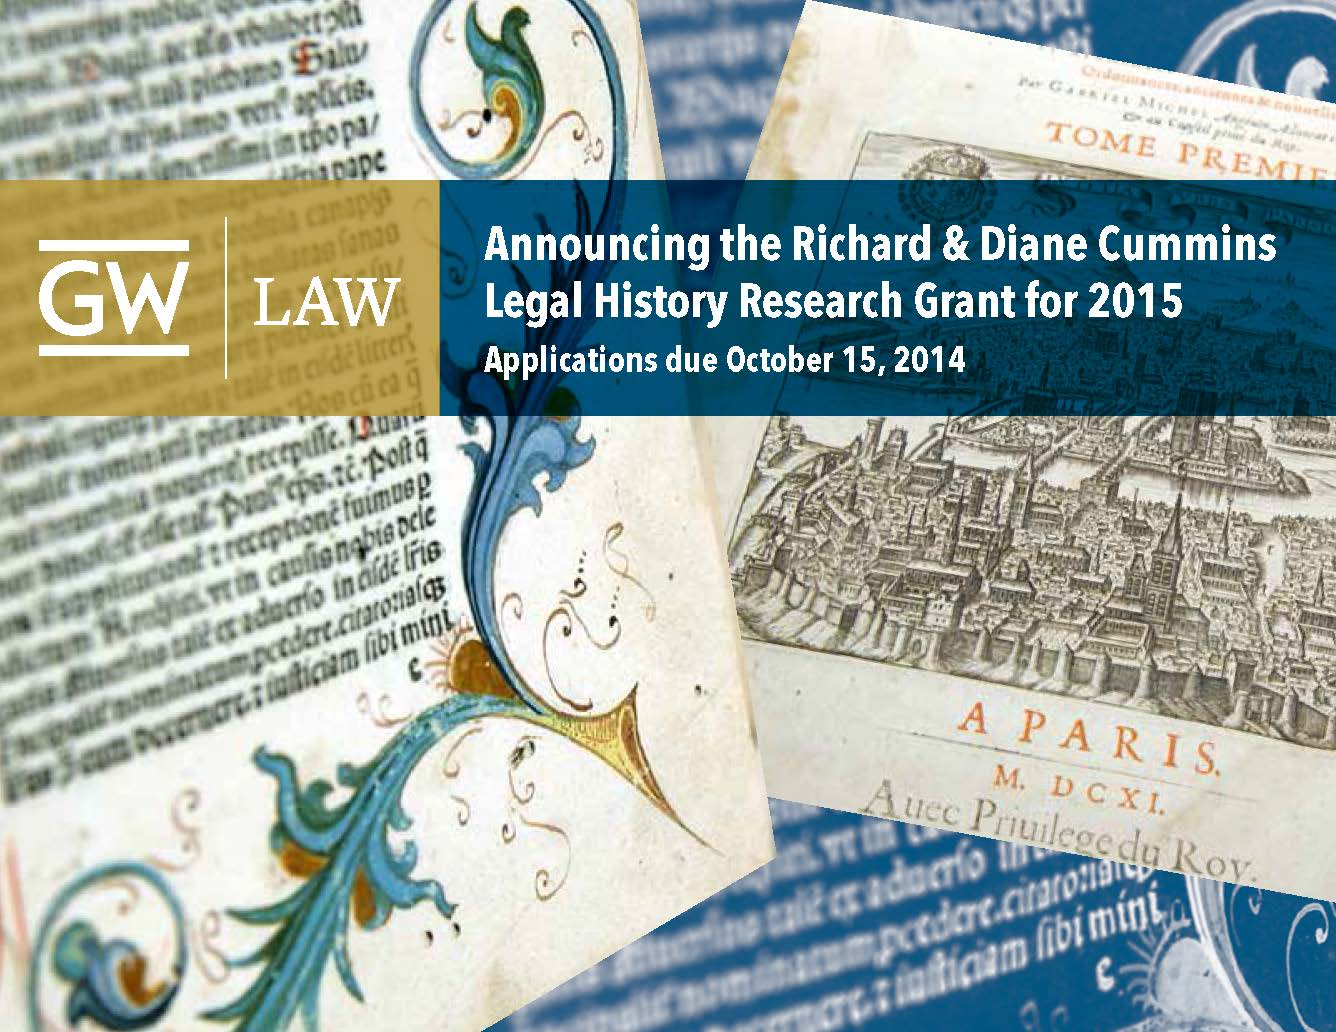 The Richard and Diane Cummins Legal History Research Grant for 2015